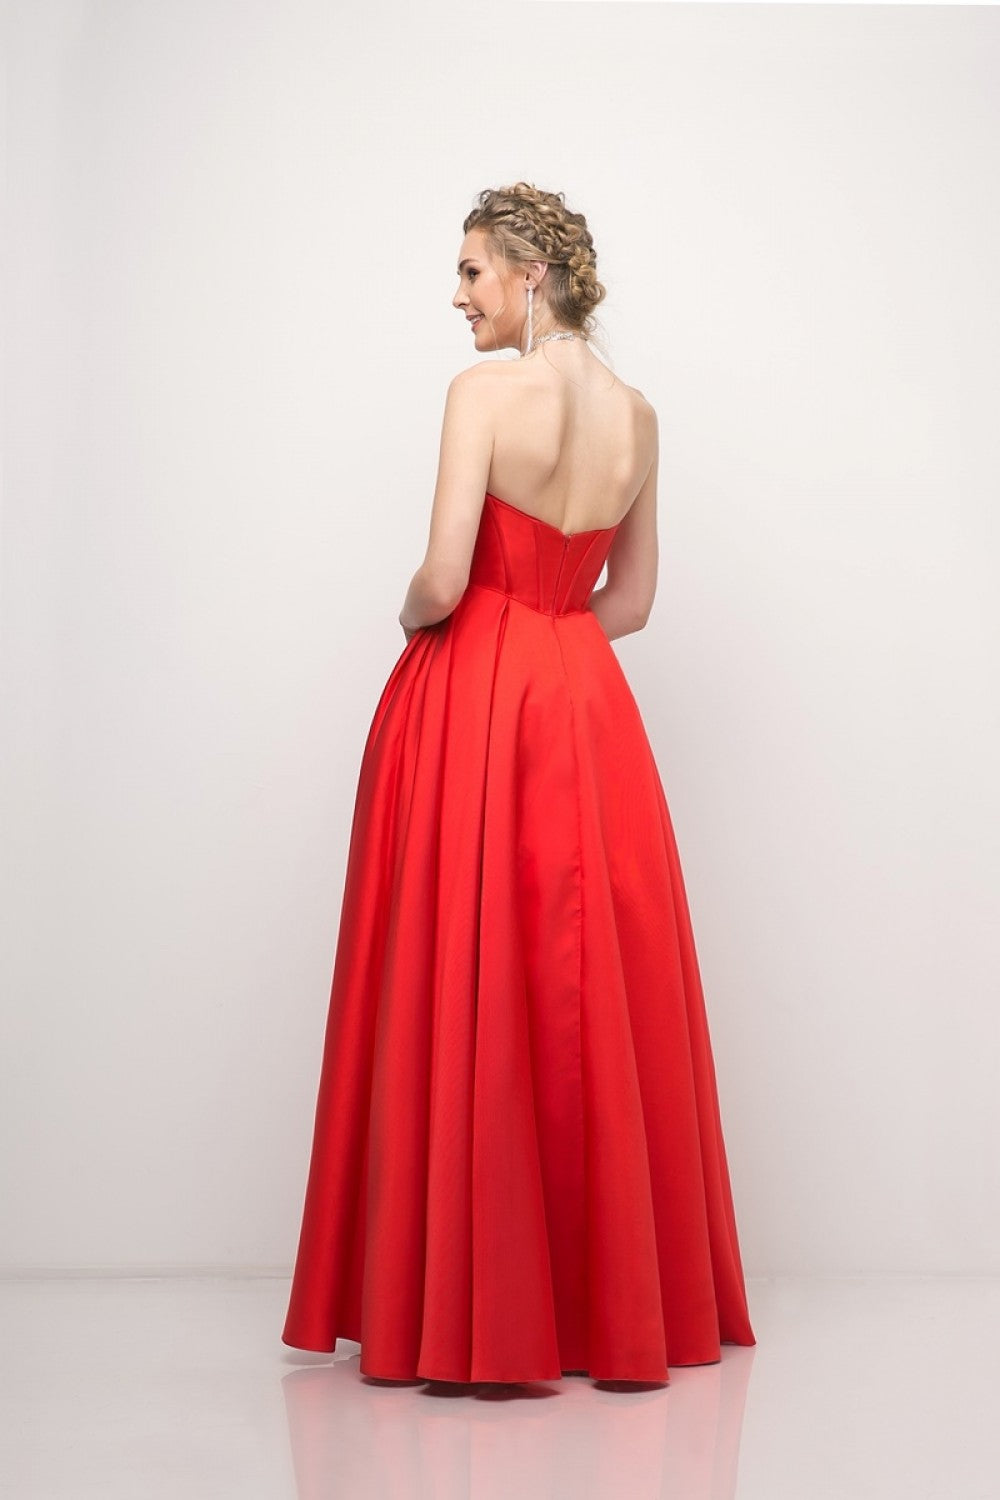 Strapless Mikado Ballgown With Corseted Bodice And Bow Details, Complete With Pockets